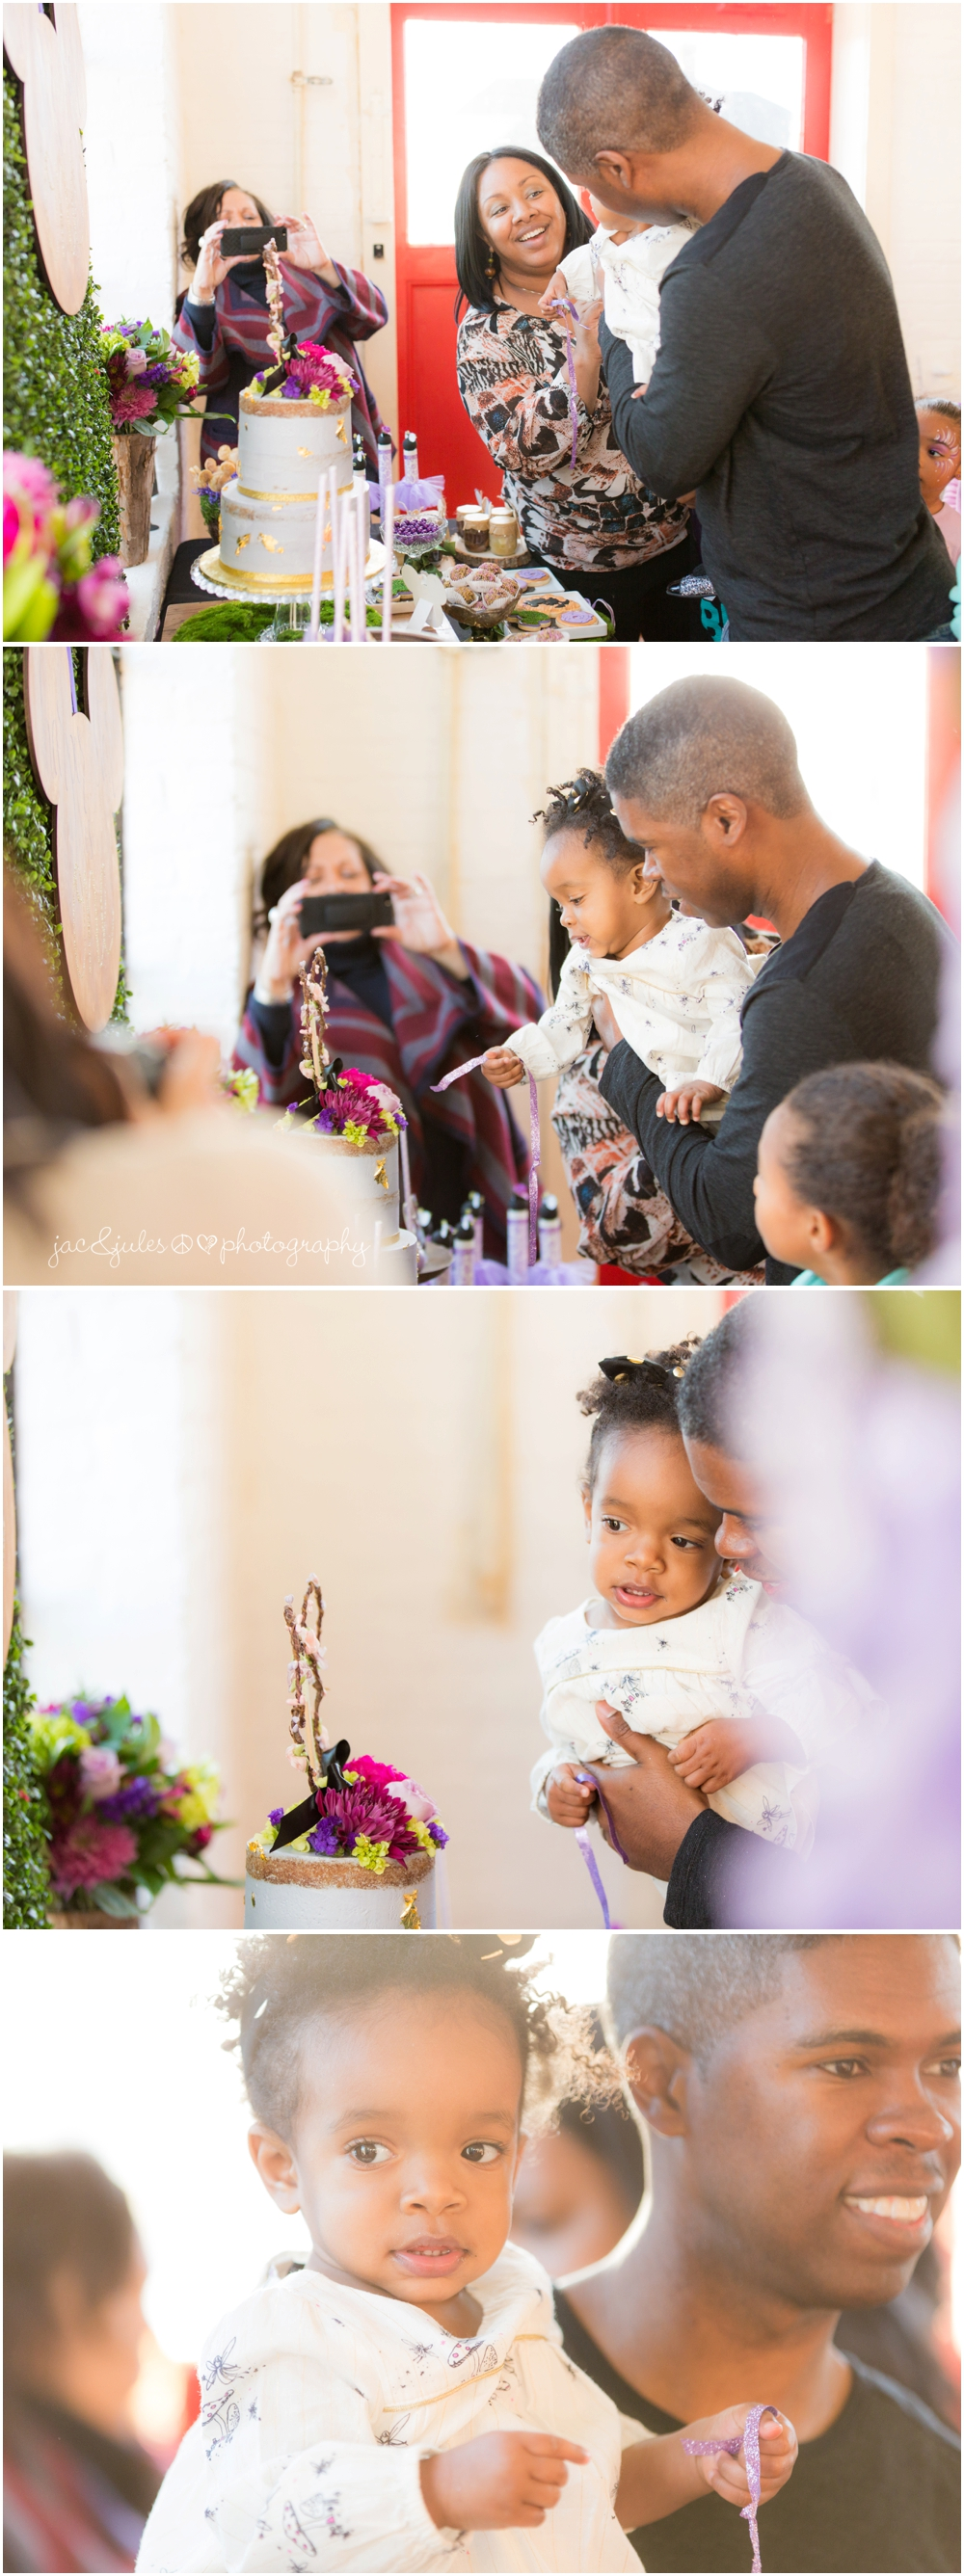 jacnjules photographs birthday party at Lotus Studios in Highland Park